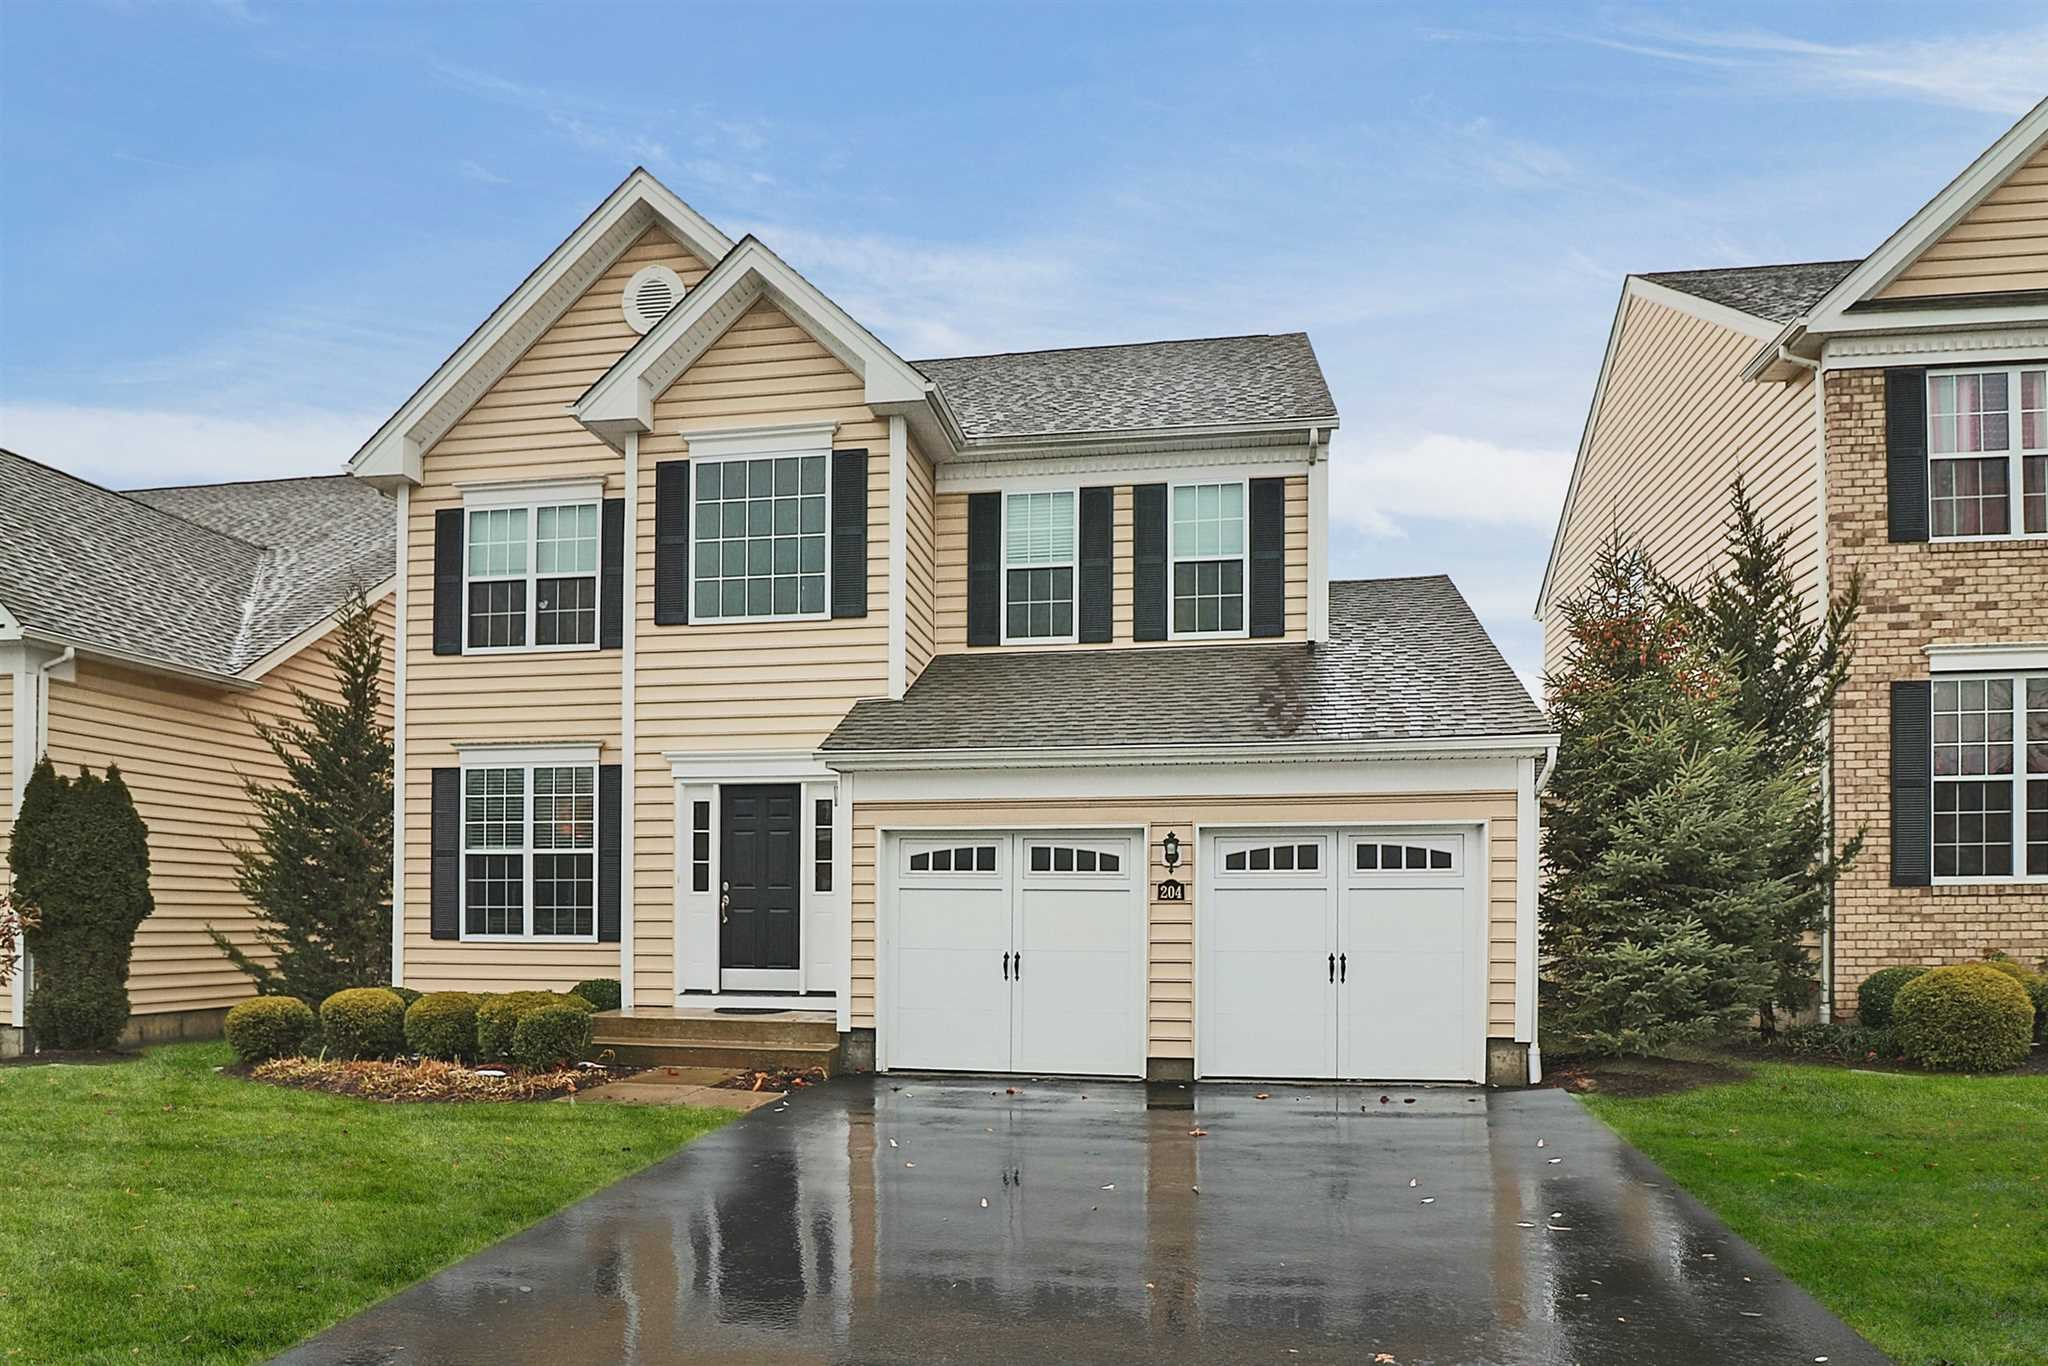 Single Family Home for Sale at 204 ROOSEVELT Drive 204 ROOSEVELT Drive Fishkill, New York 12524 United States